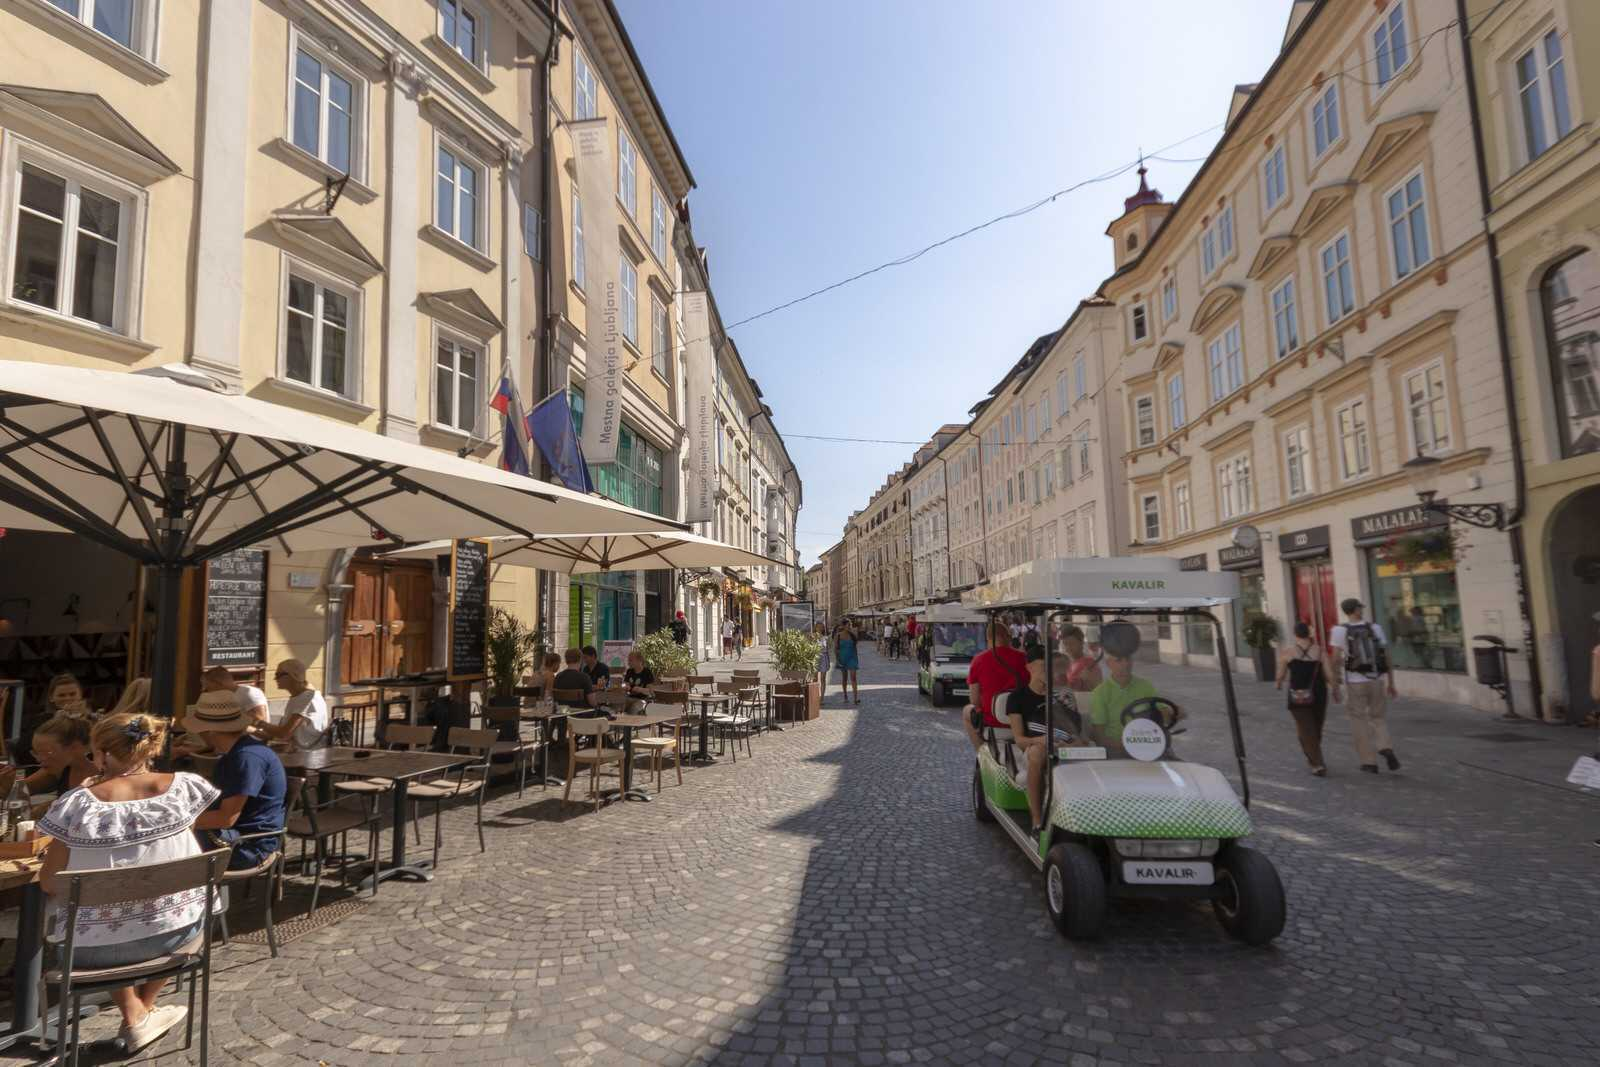 The electric car takes guests around the old town for free.